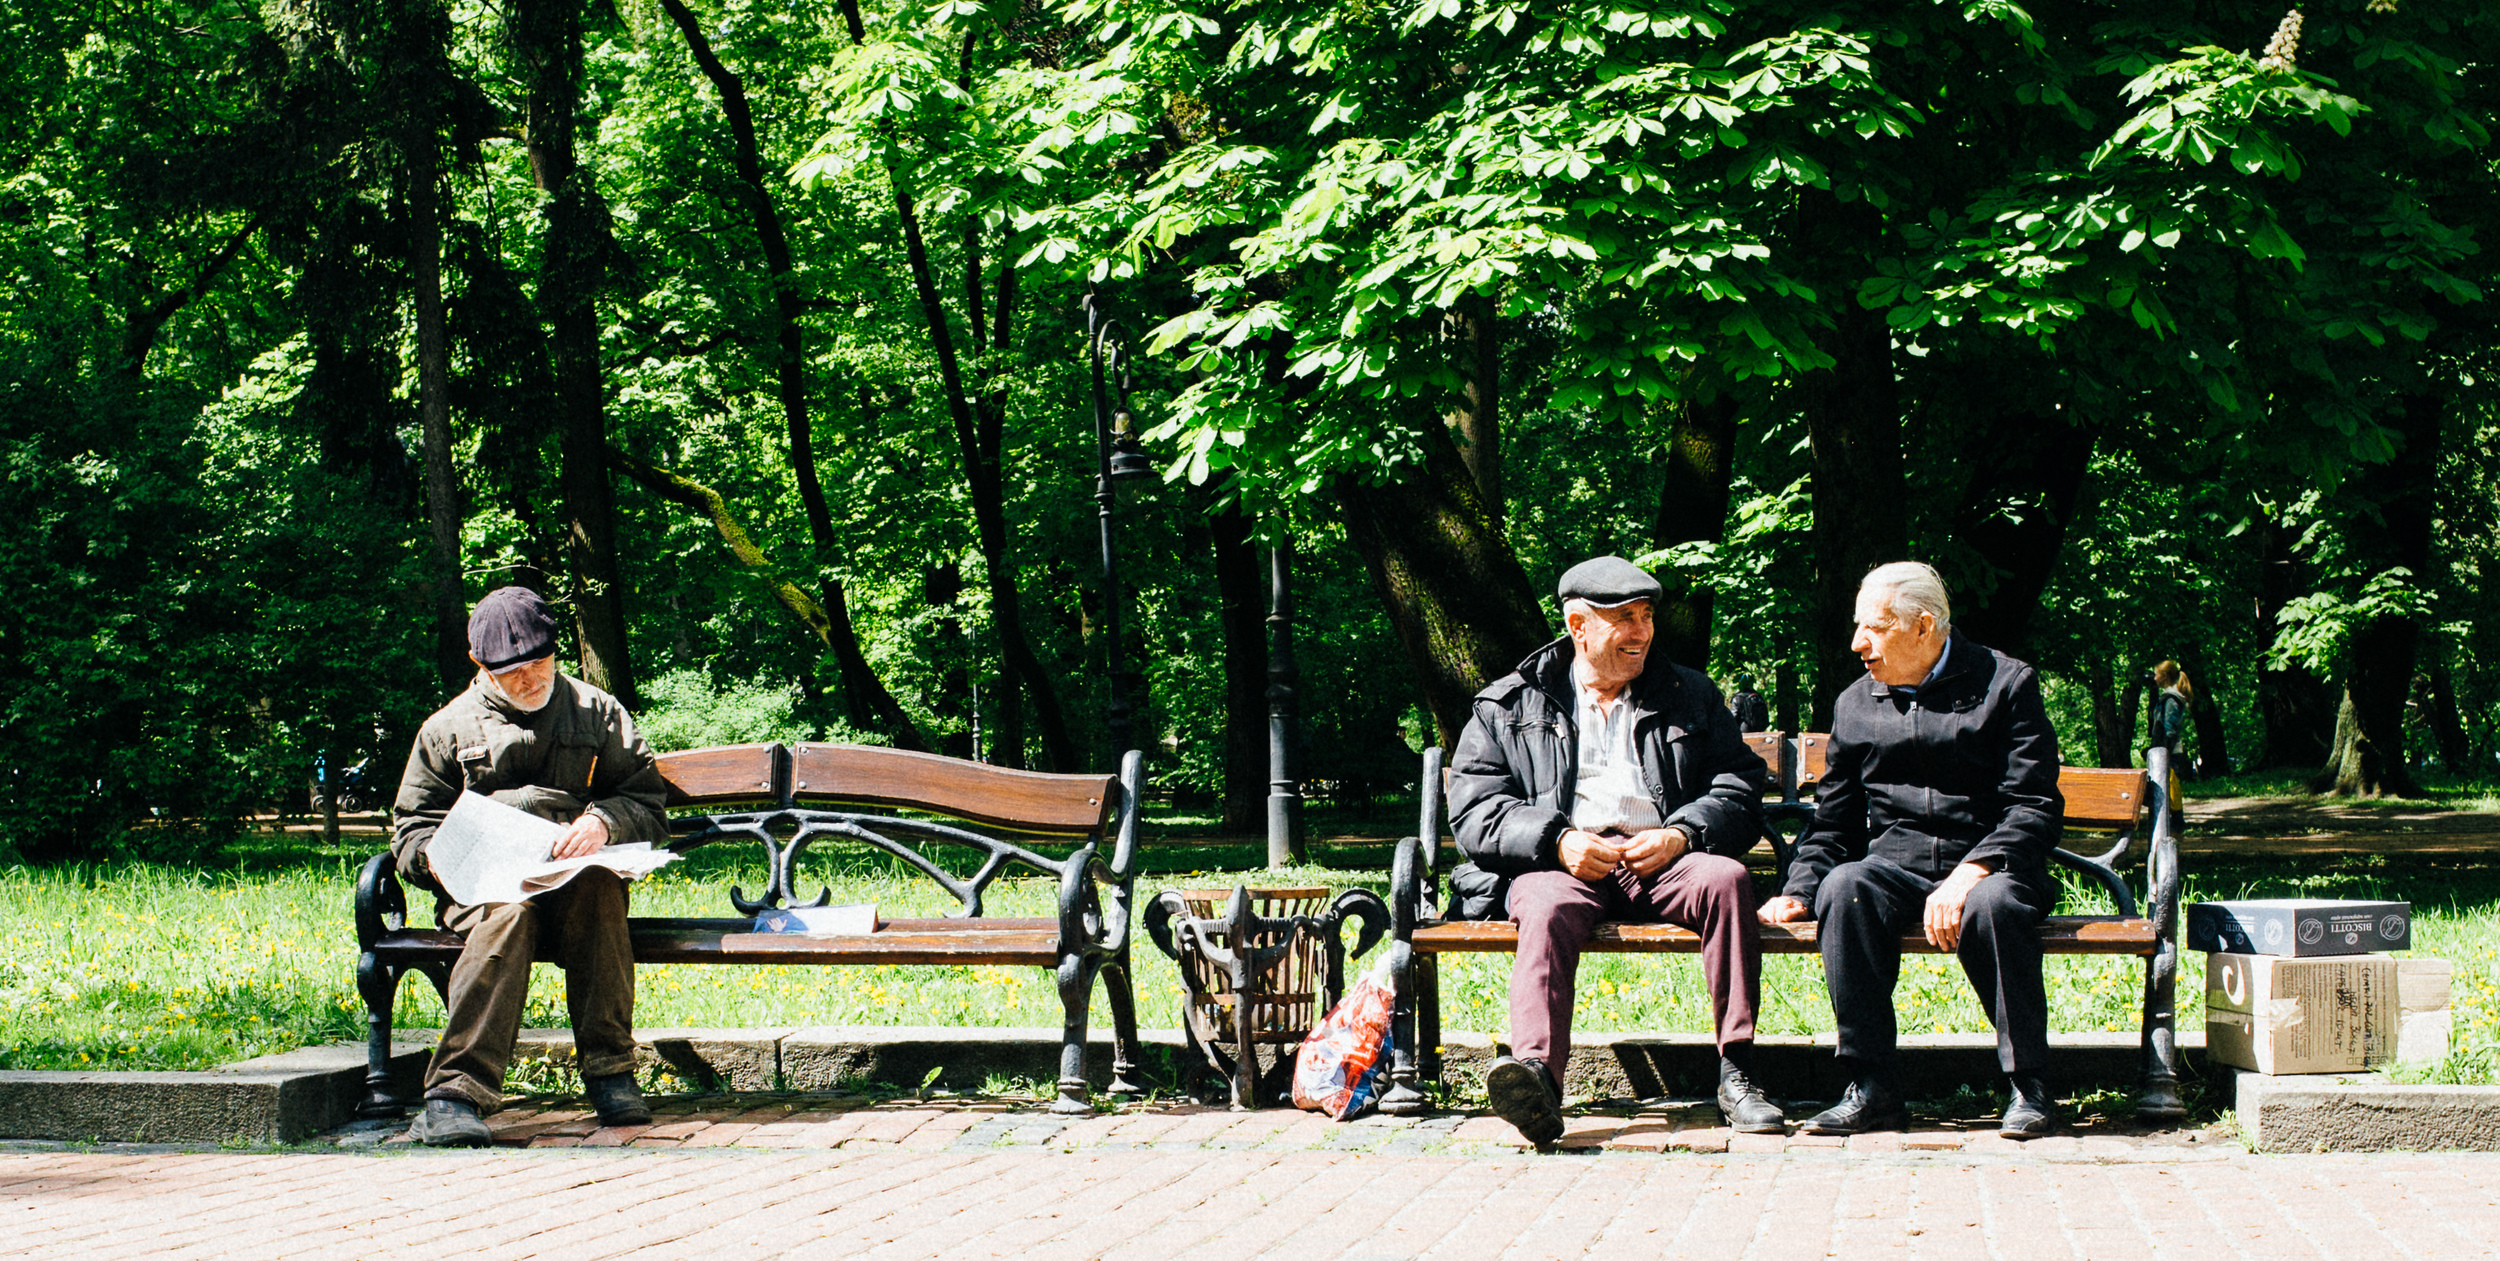 Sharing stories in the park.